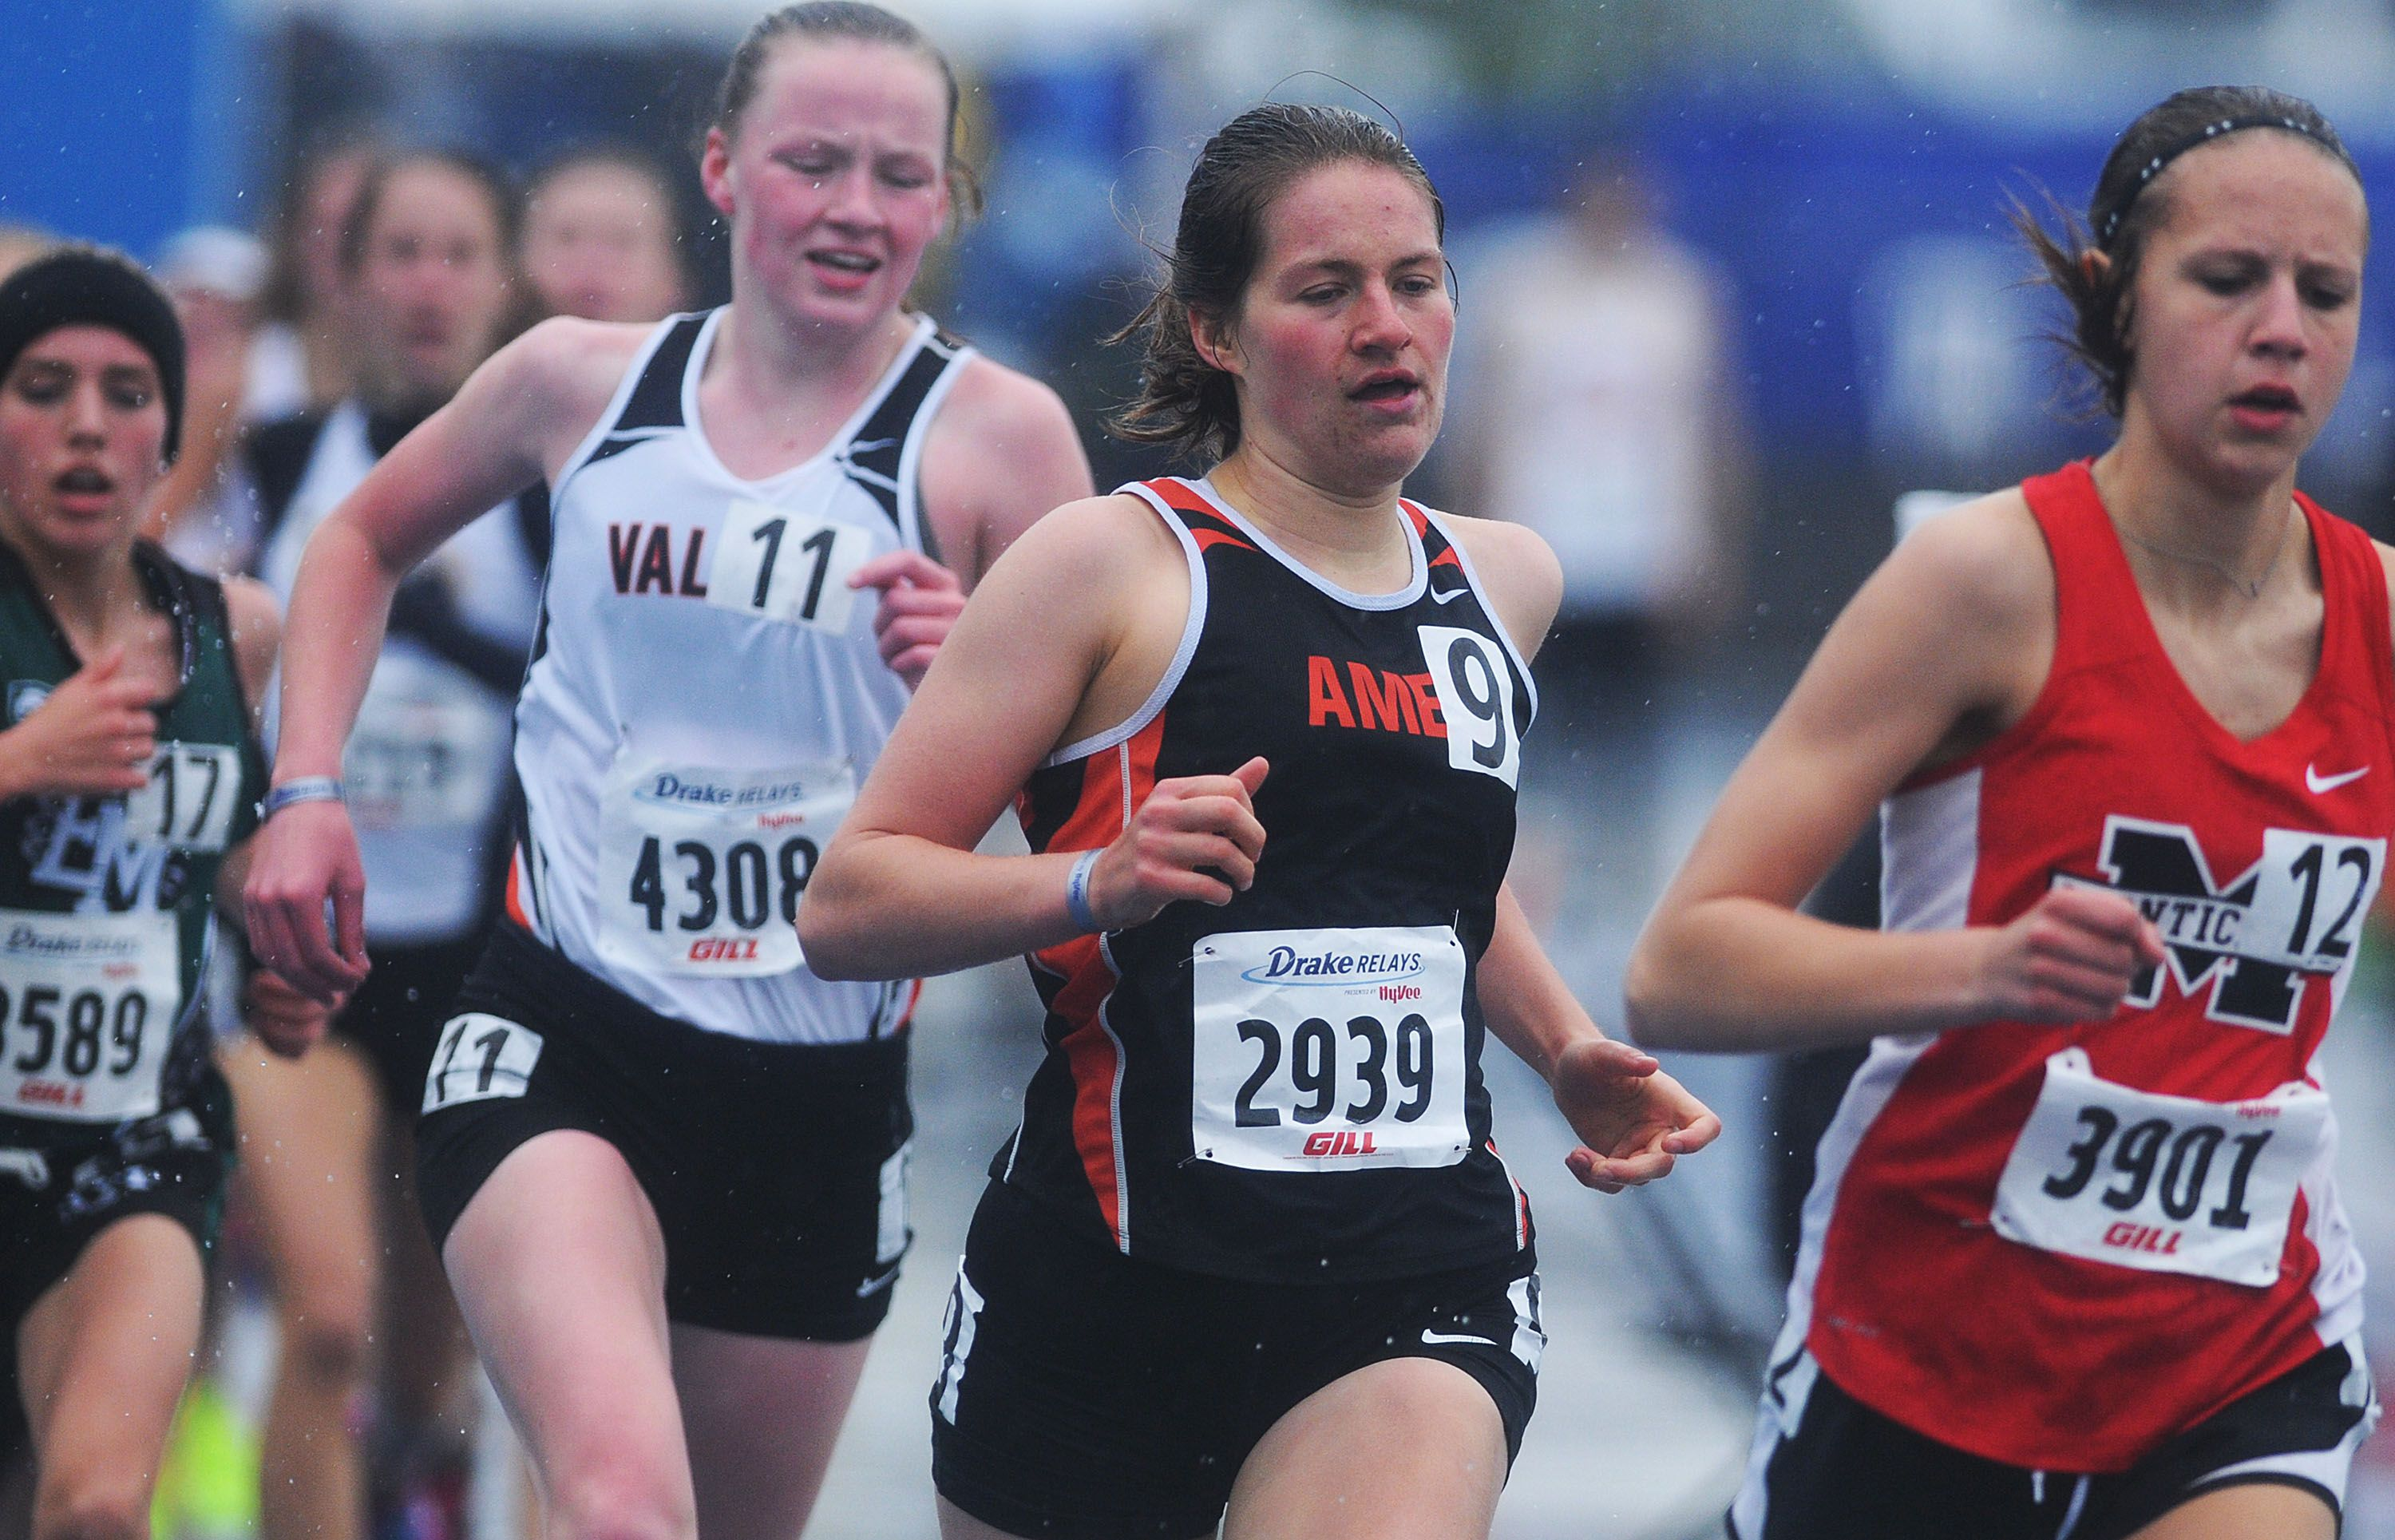 Ames' Katelyn Moore runs to a ninth-place finish in the high school girls' 1,500-meter run at the Drake Relays on Saturday at Drake Stadium in Des Moines. Photo by Nirmalendu Majumdar/Ames Tribune http://www.amestrib.com/sports/20170429/girls8217-track-moore-takes-ninth-in-1500